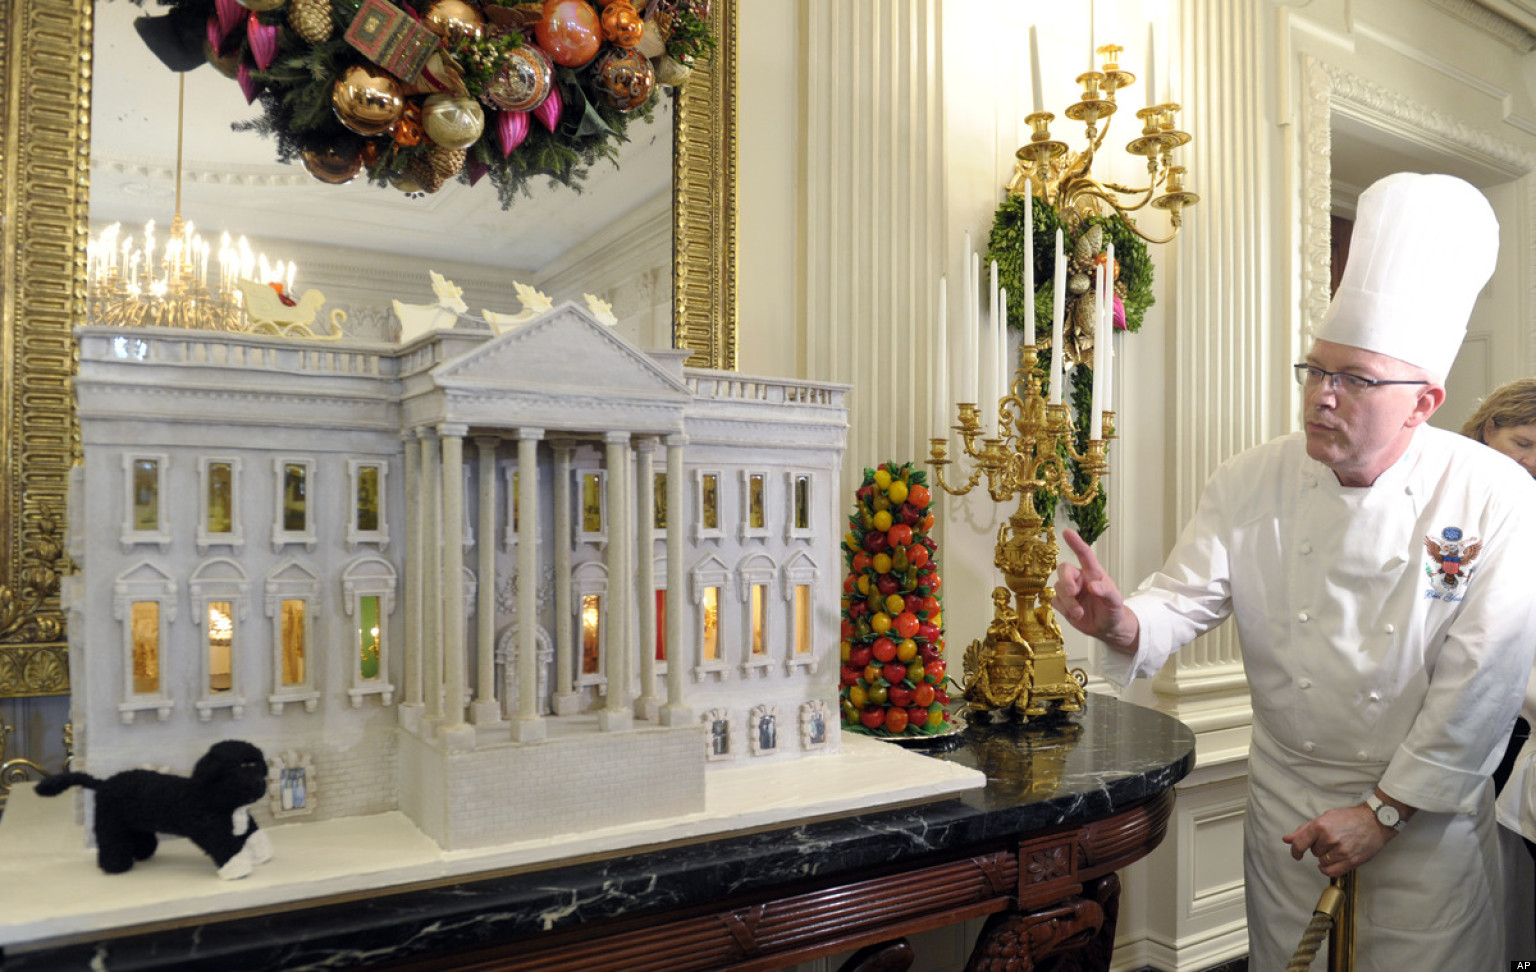 White House Gingerbread House 2012 300 Pound Creation